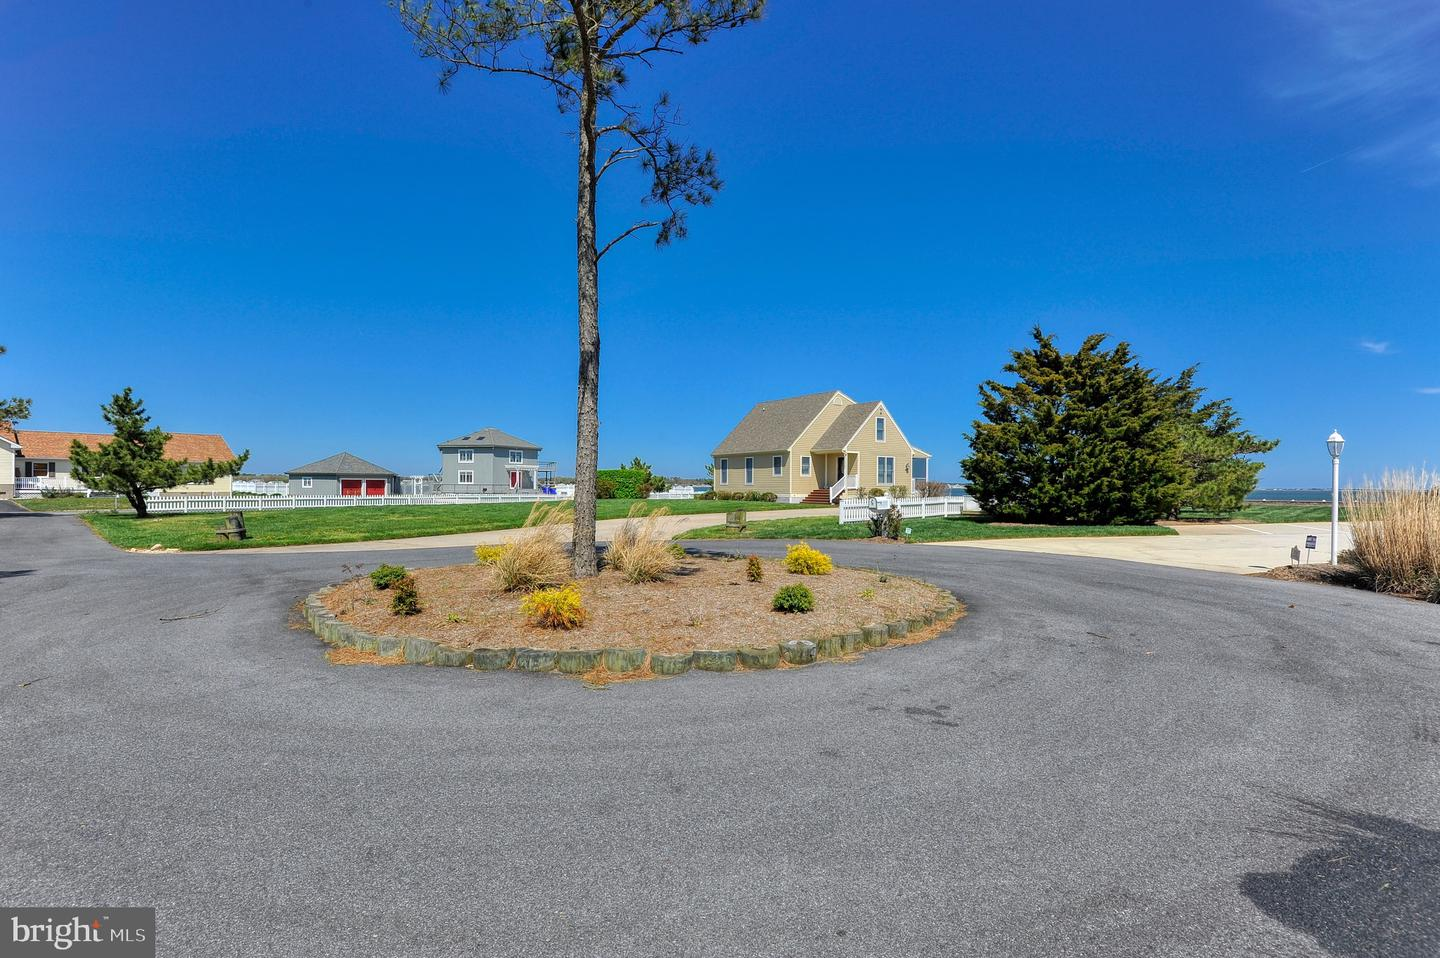 1001567326-301655577797-2019-08-04-11-35-44 3 Bay View Cir #3 | Lewes, DE Real Estate For Sale | MLS# 1001567326  - Coldwell Banker Resort Realty